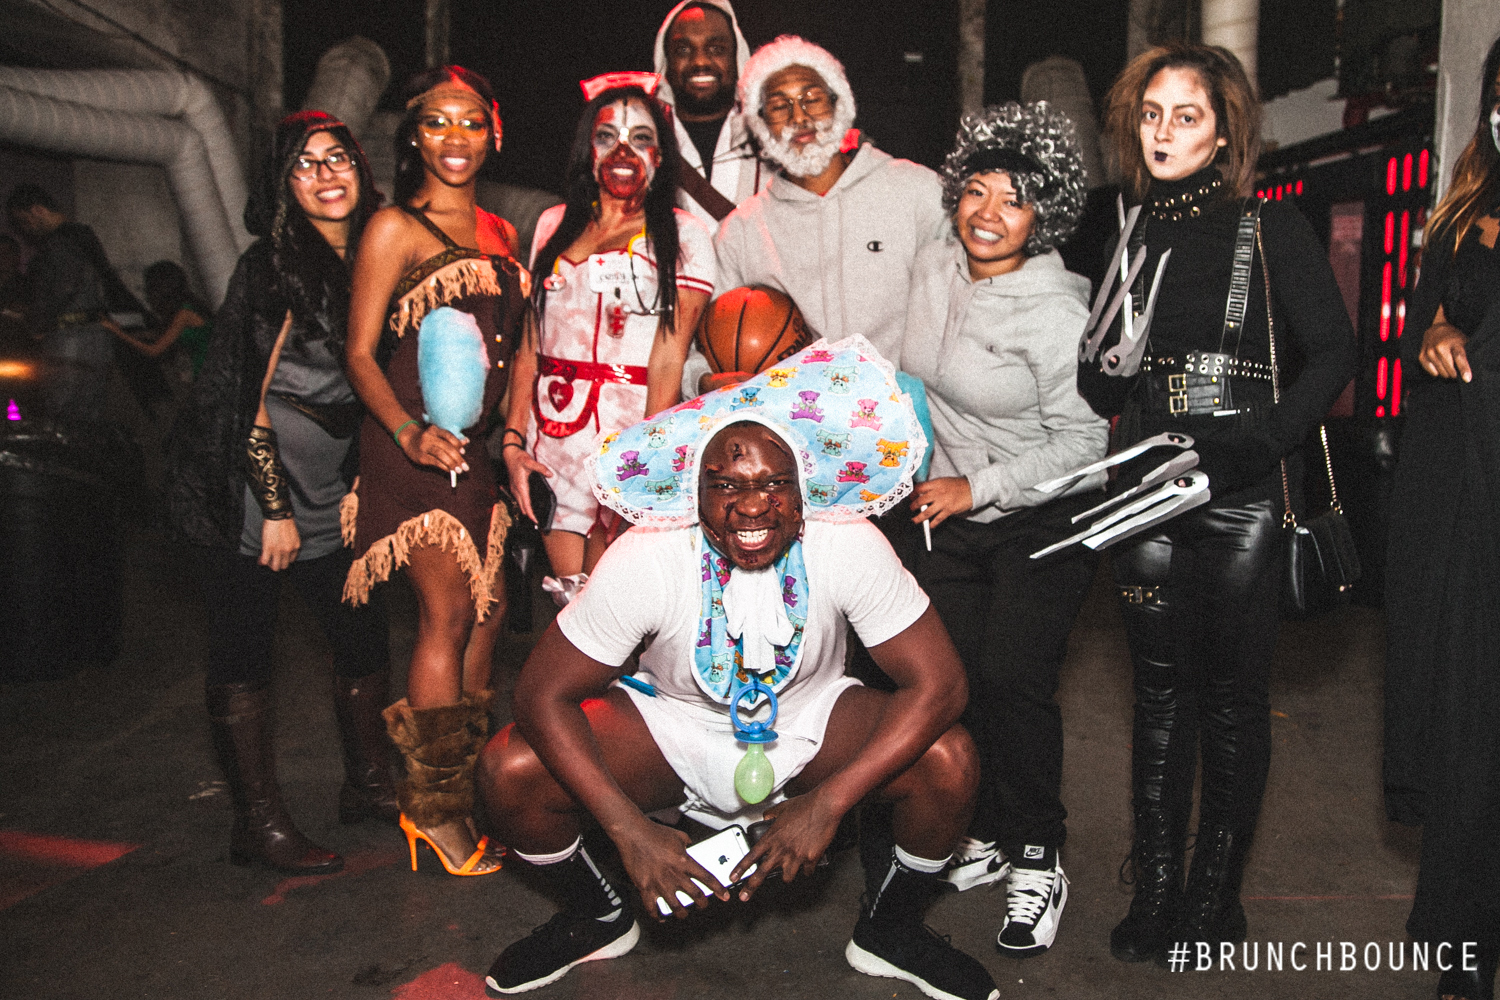 brunch-bounce-x-adidas-originals-halloween-103115_22729123176_o.jpg